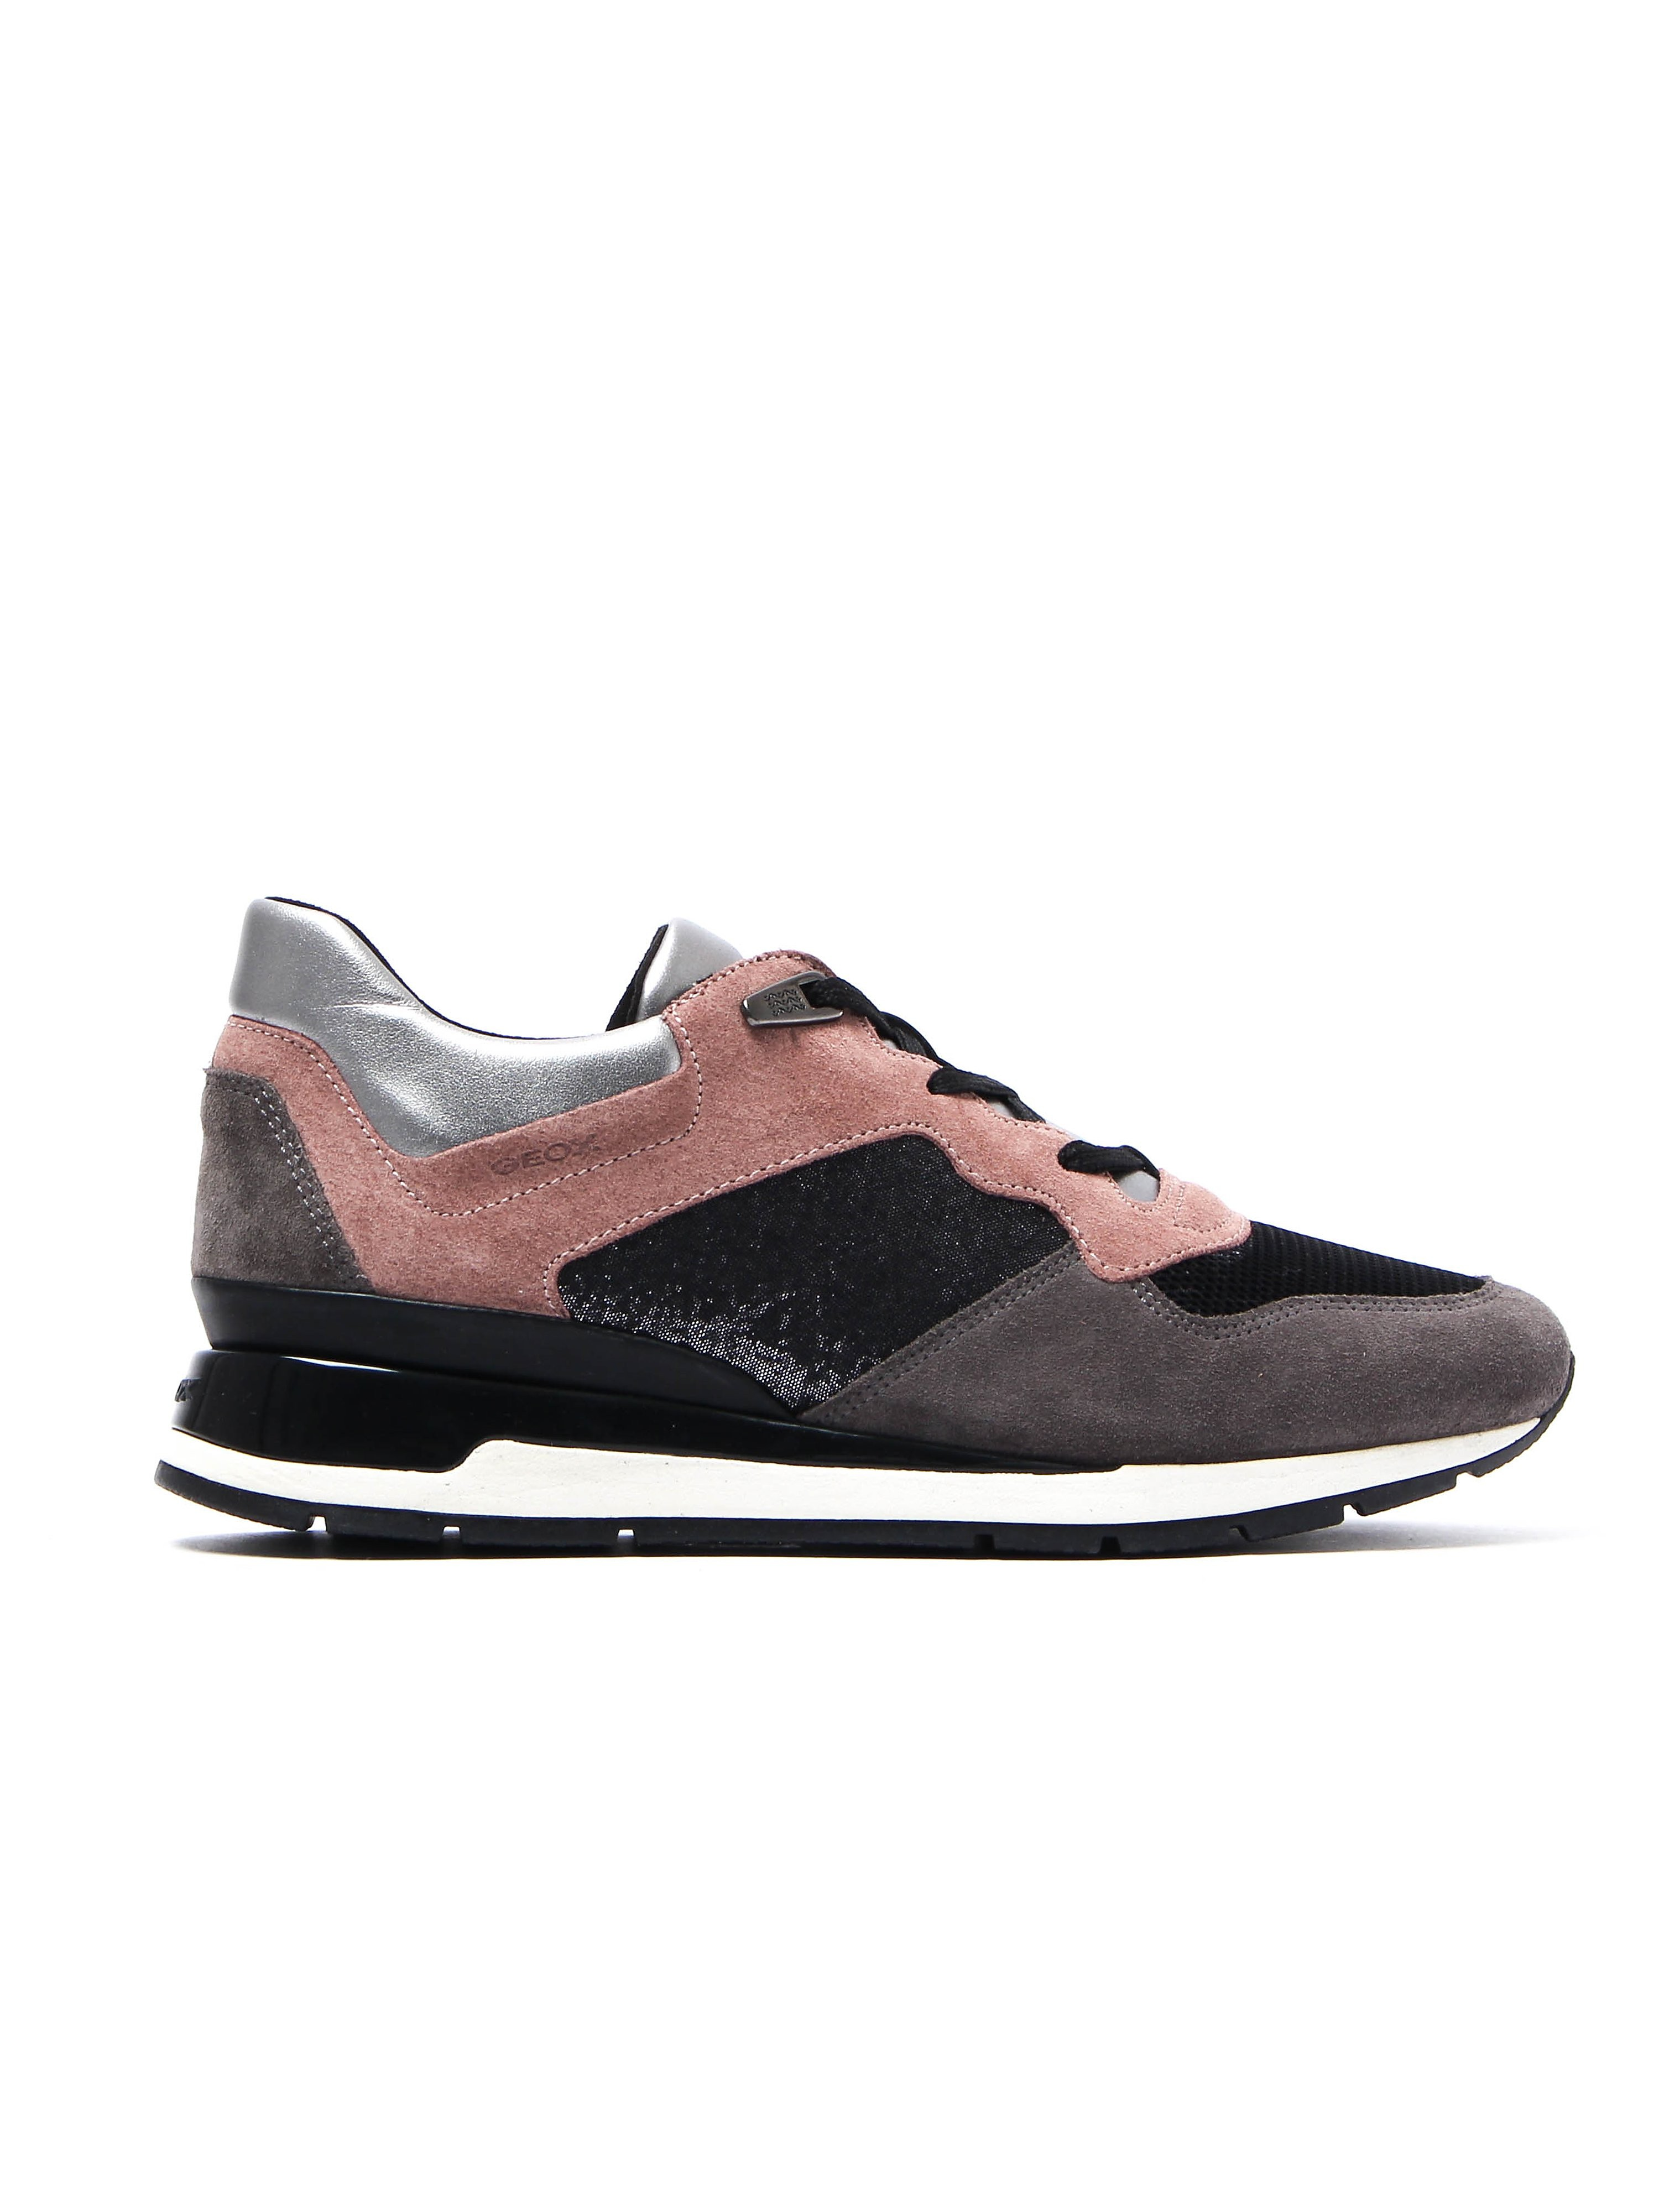 Geox Women's D Shahira Trainers - Old Rose Leather